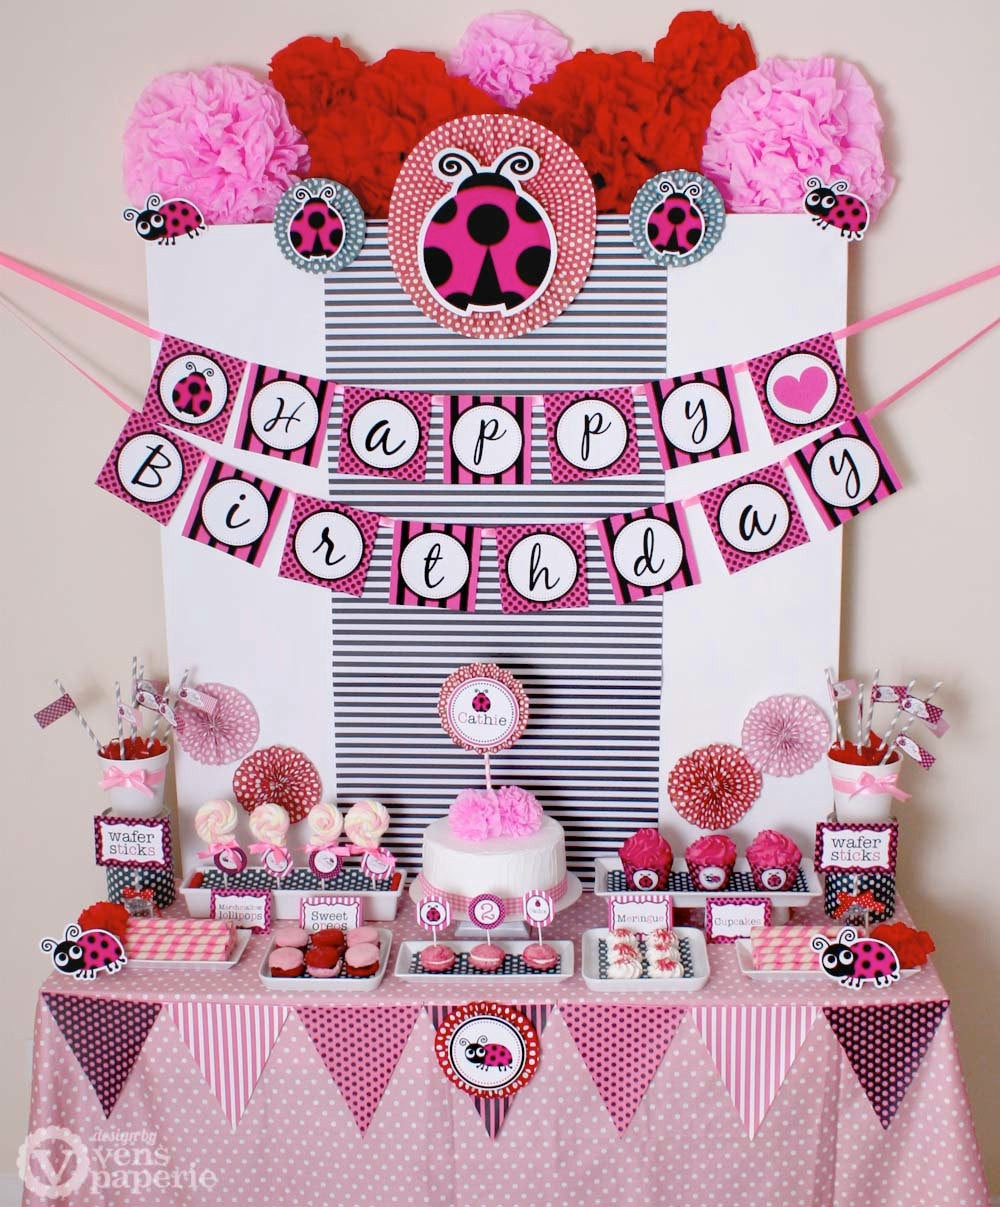 Best ideas about Ladybug Birthday Decorations . Save or Pin Pink Lady Bug Birthday Party Package Personalized by Now.